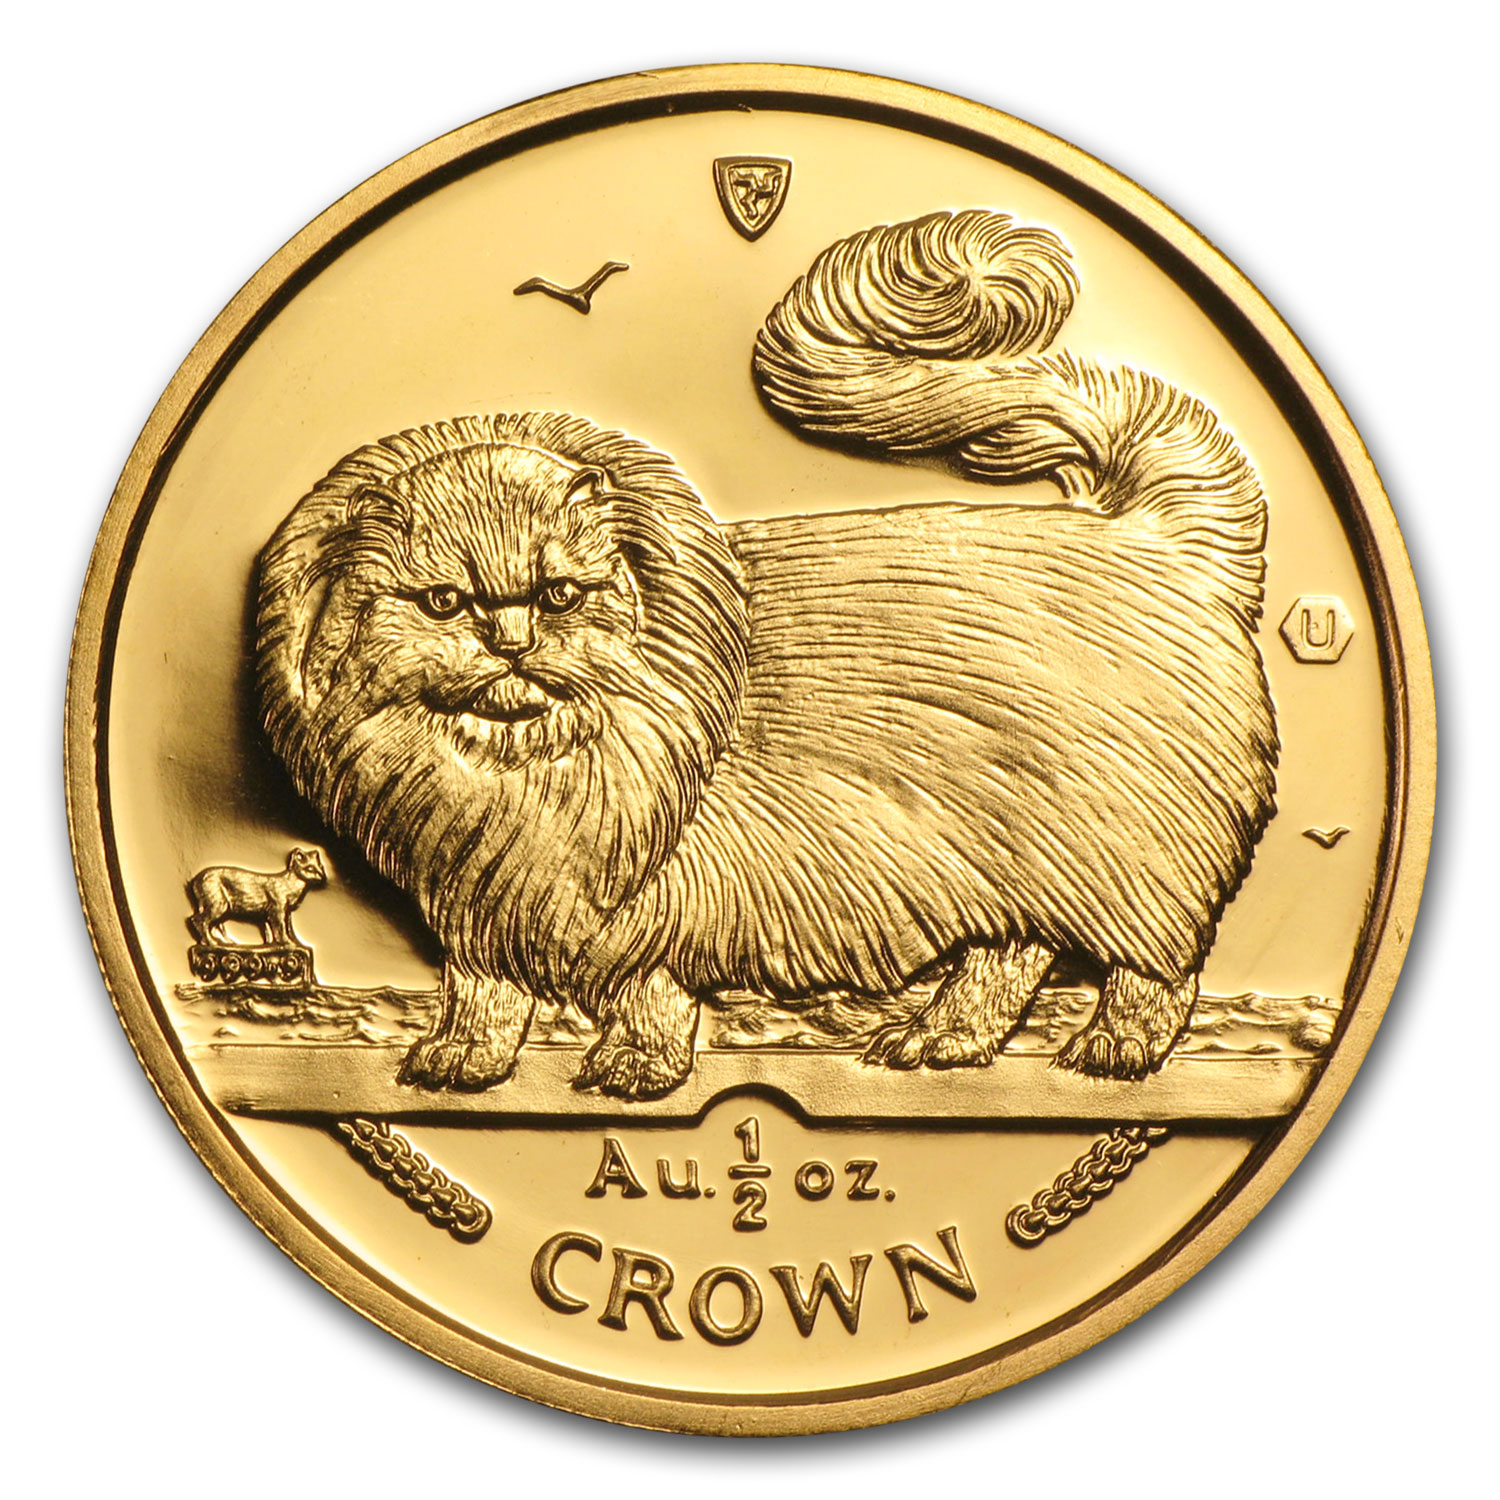 Isle of Man 1/2 oz Gold Cat Crown (Proof or Uncirculated)